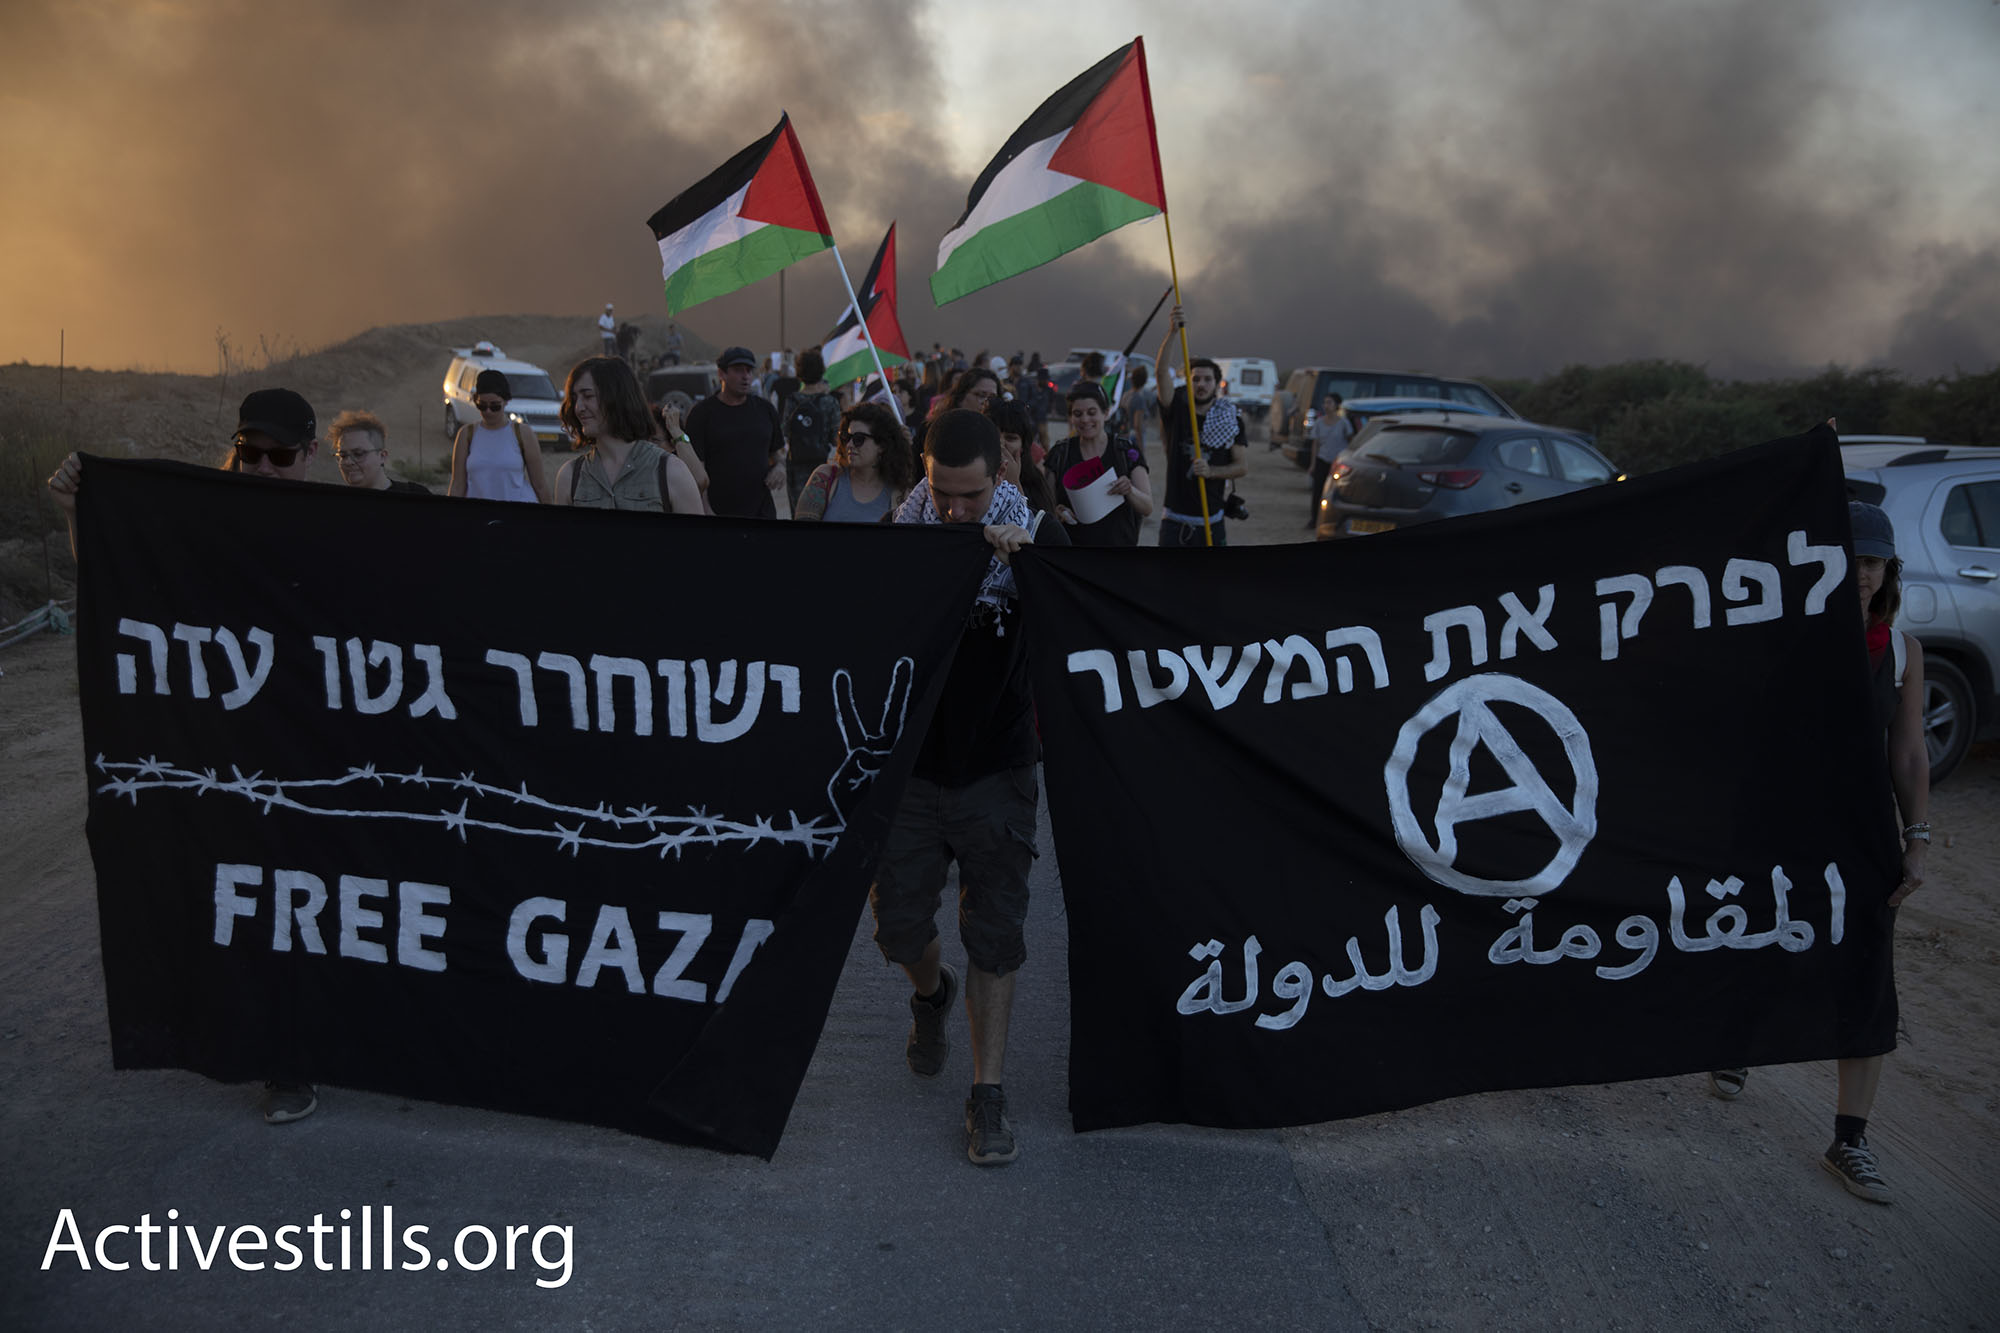 For many of the activists, the ability to come and witness first hand what is going on beyond the fence, inside Gaza, was an important goal in itself. (Oren Ziv/Activestills.org)